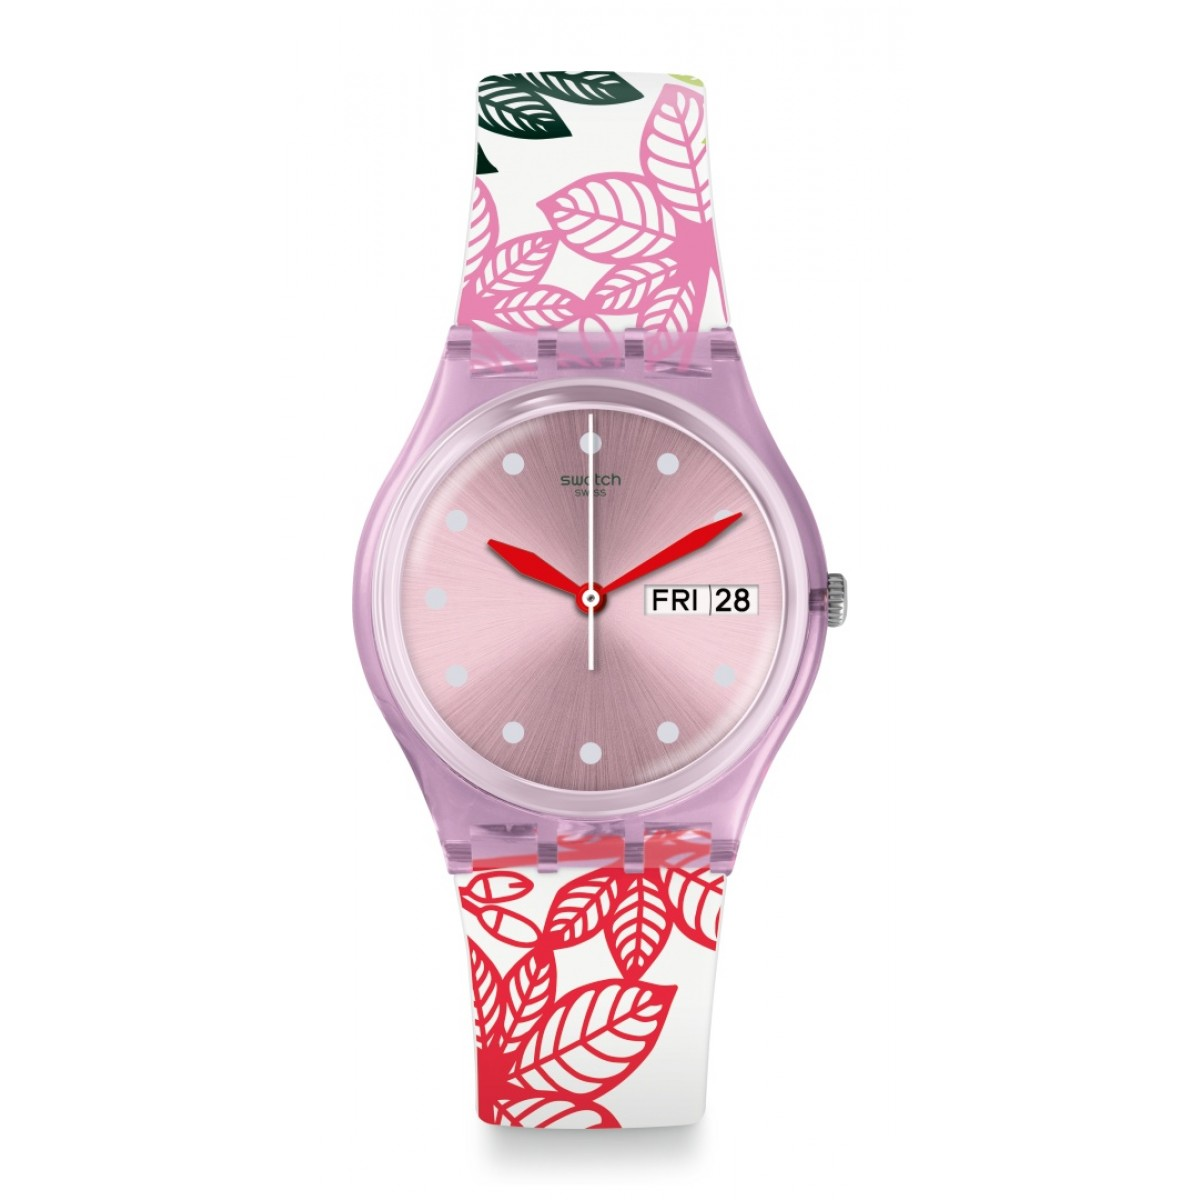 Genskie_chasy_Swatch (46)